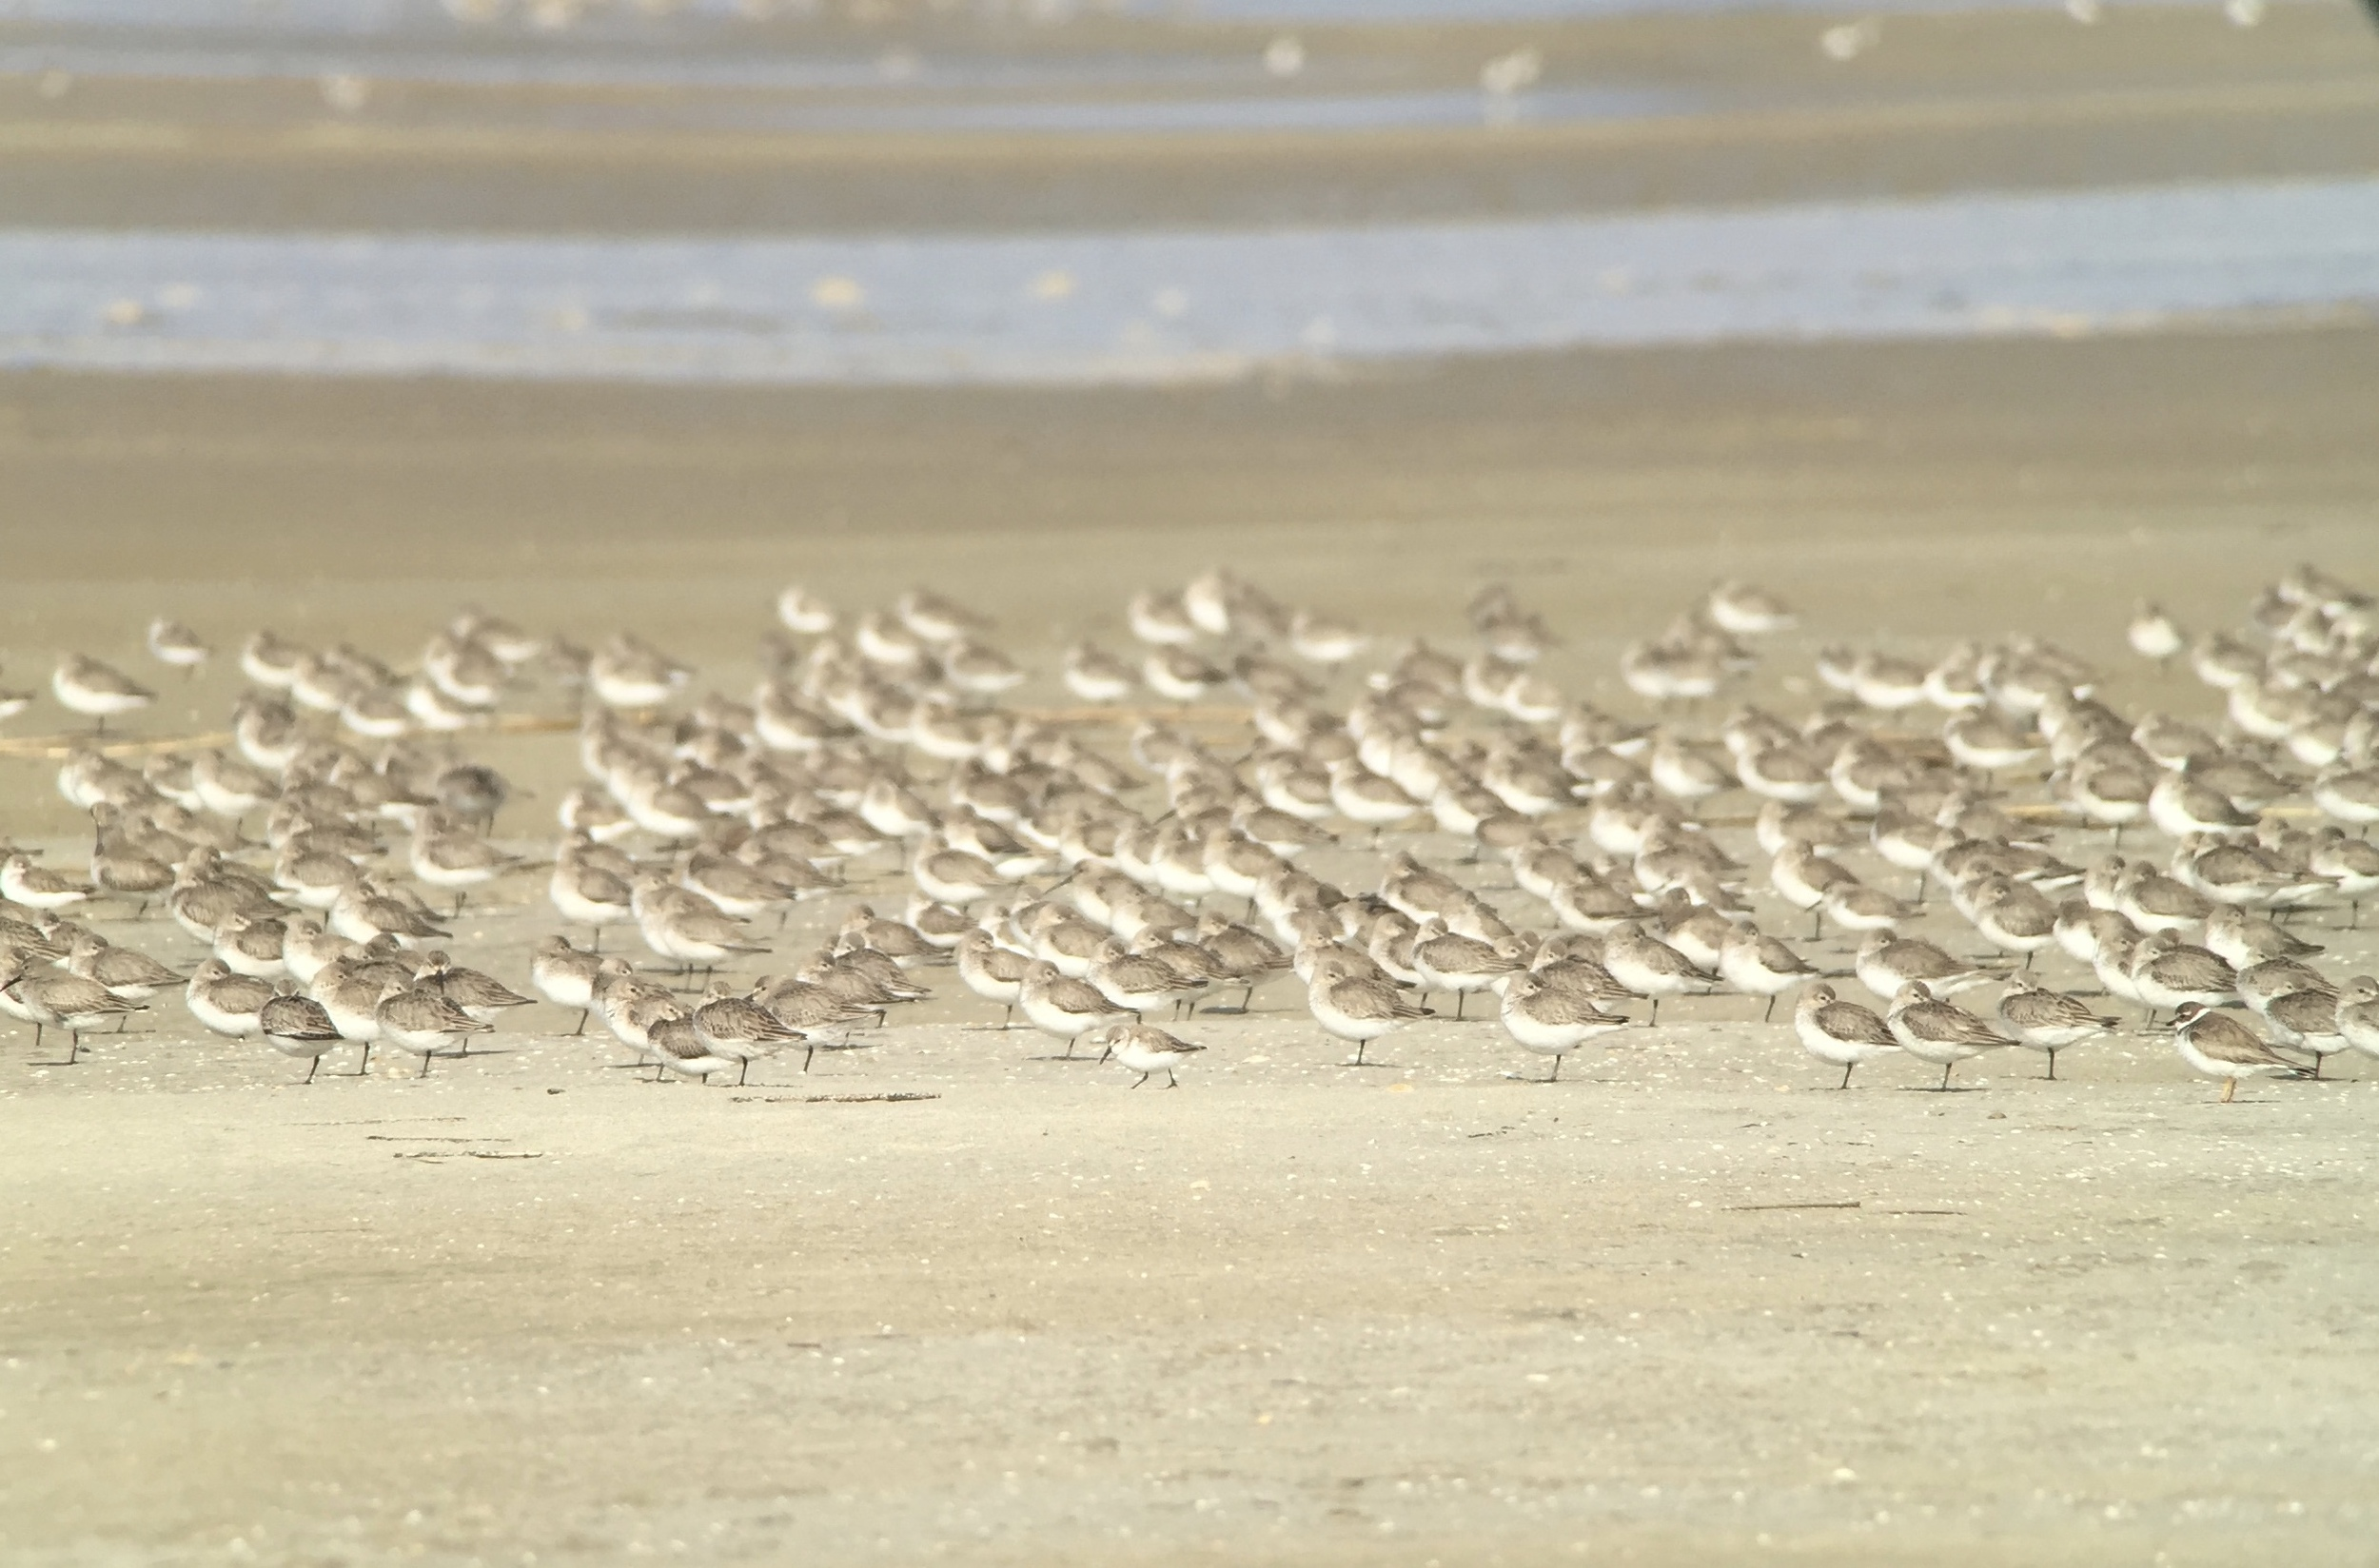 Shorebirds by the thousands! Digiscoped with Swarovski ATX scope, iPhone +Phone Skope adapter